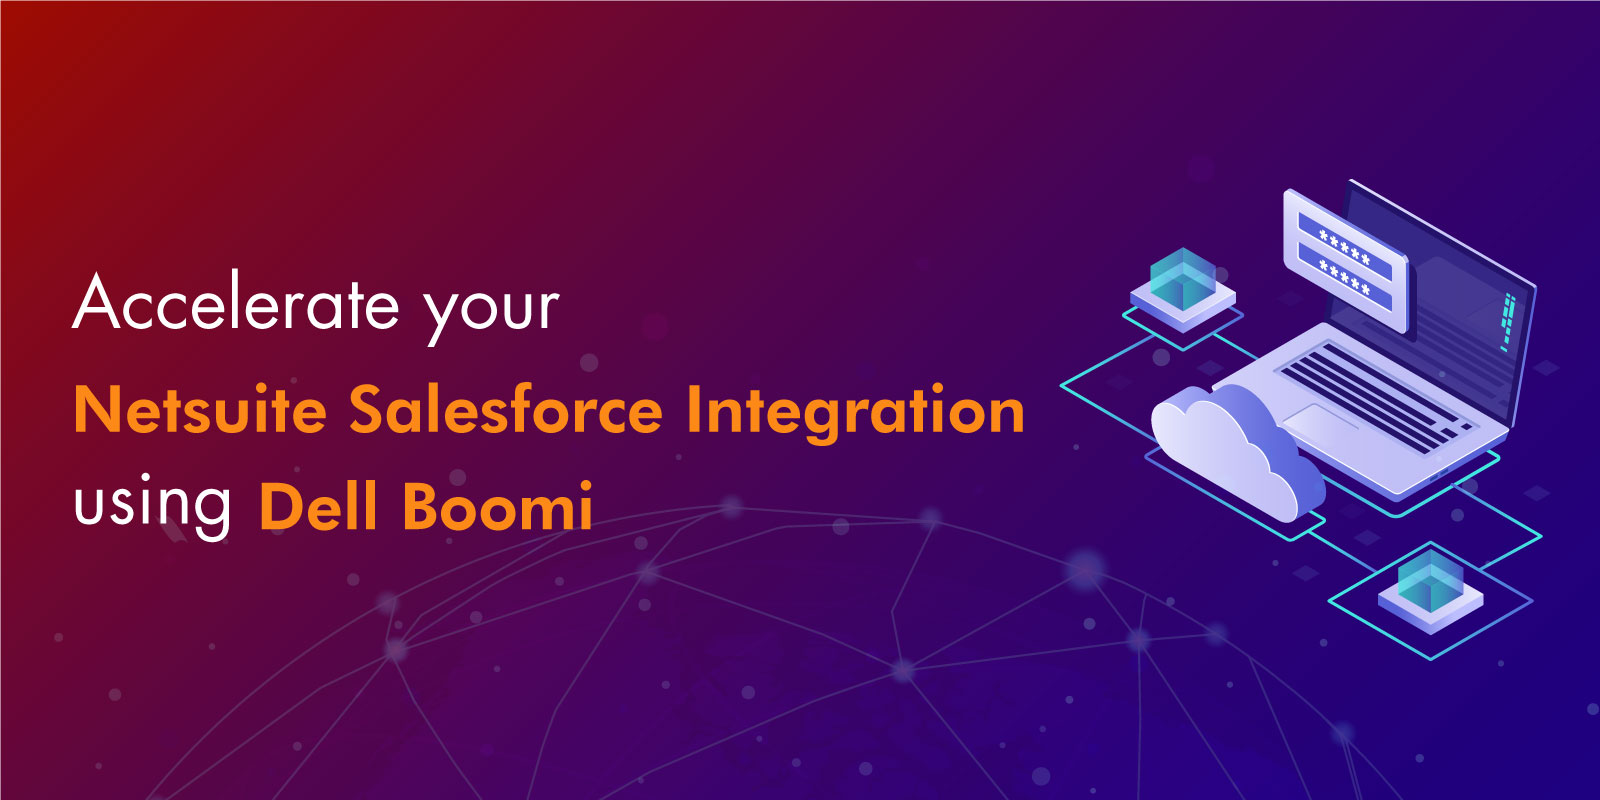 Dell Boomi facilitates seamless integration of Salesforce with NetSuite